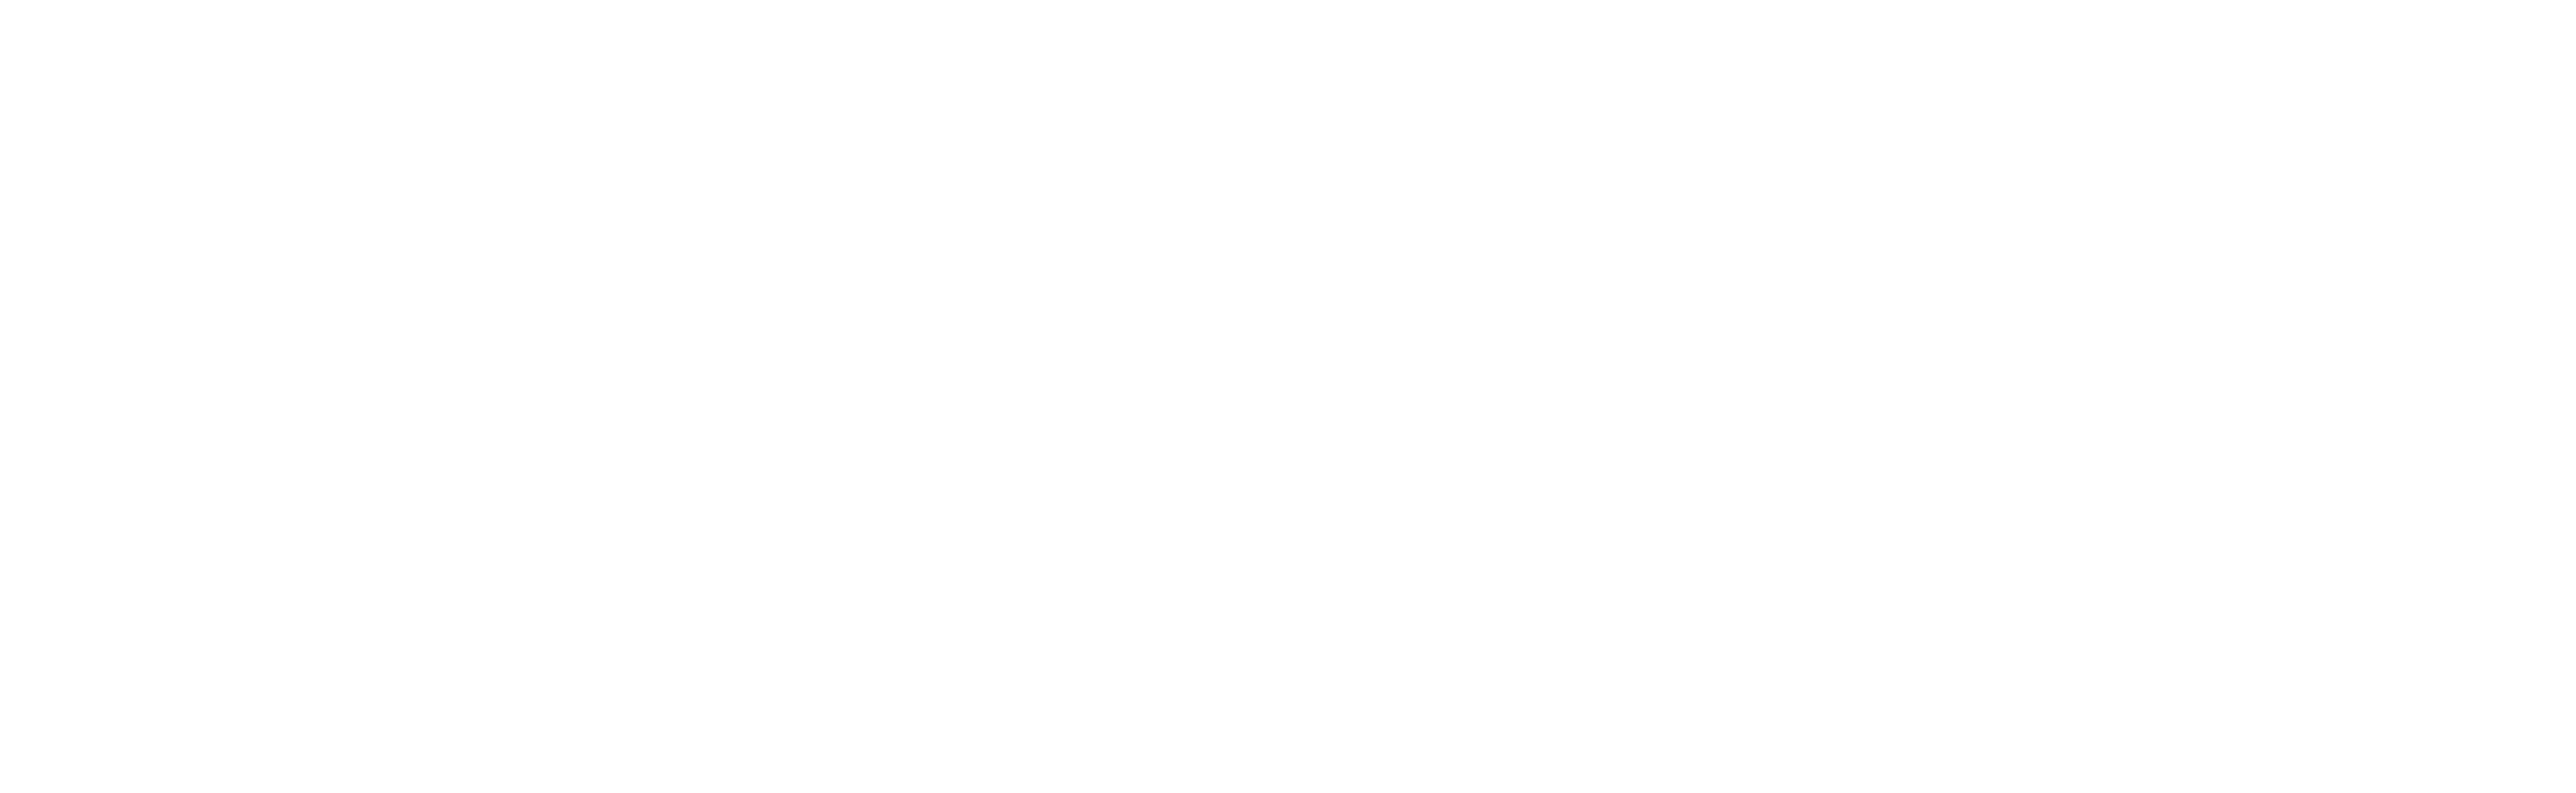 2020 Annual Meeting | April 25-29, 2020 | Philadelphia